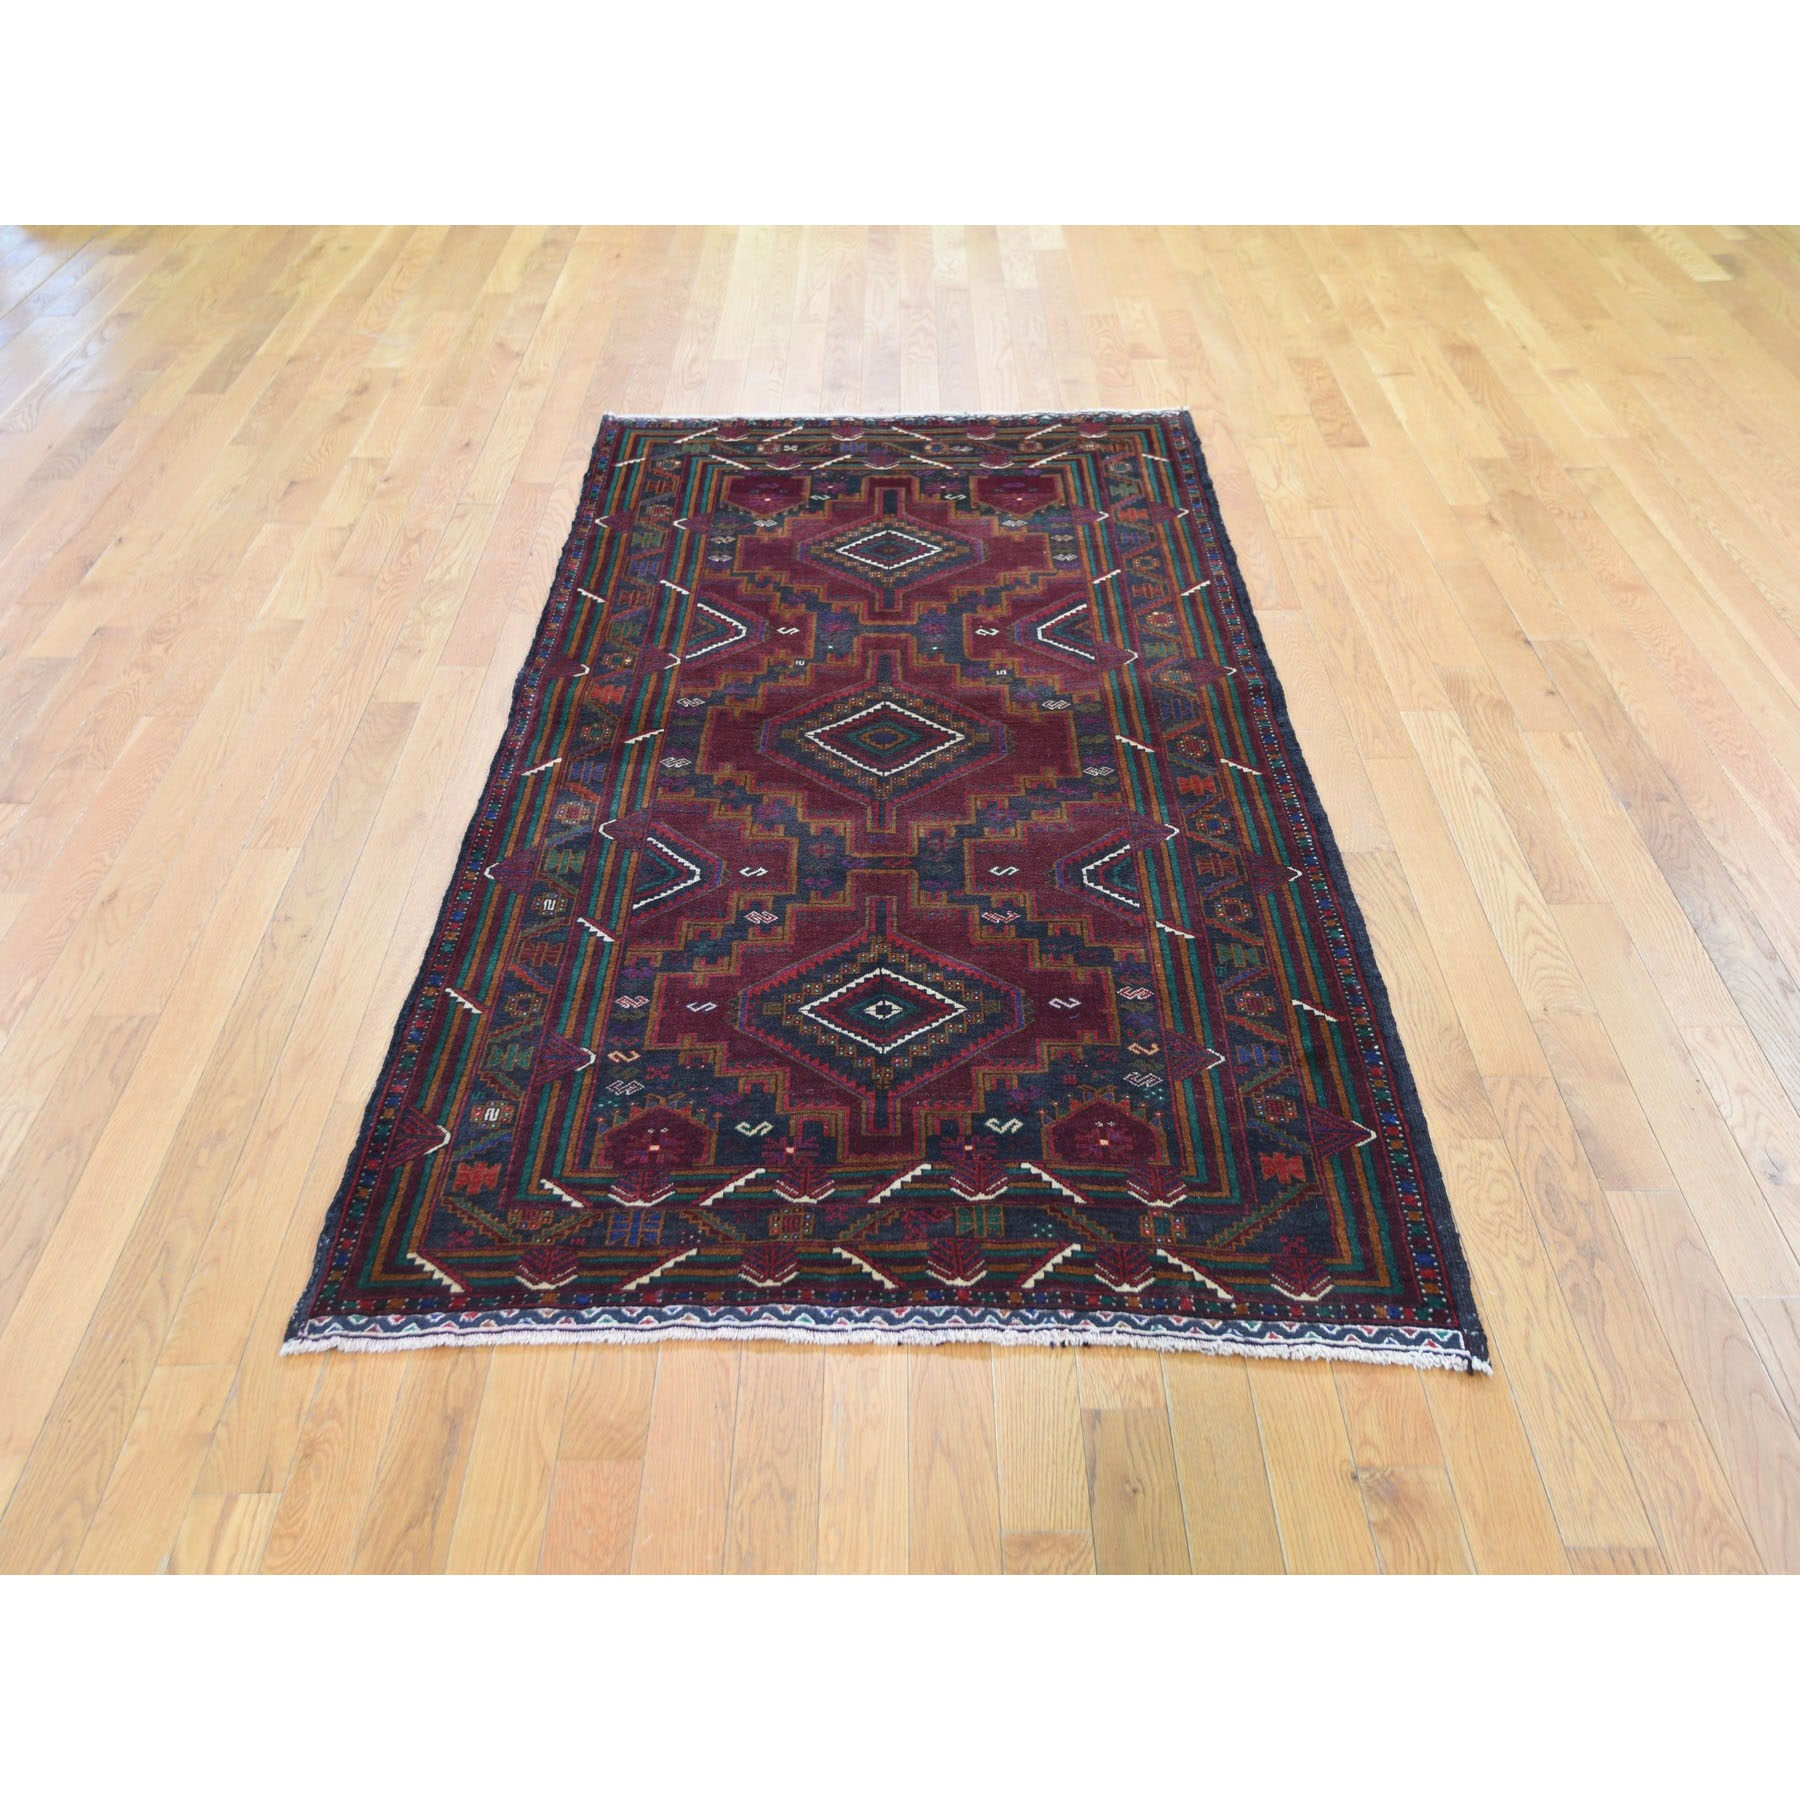 3-10 x7- Afghan Baluch Touch Of Blue Geometric Design Pure Wool Hand Knotted Oriental Rug